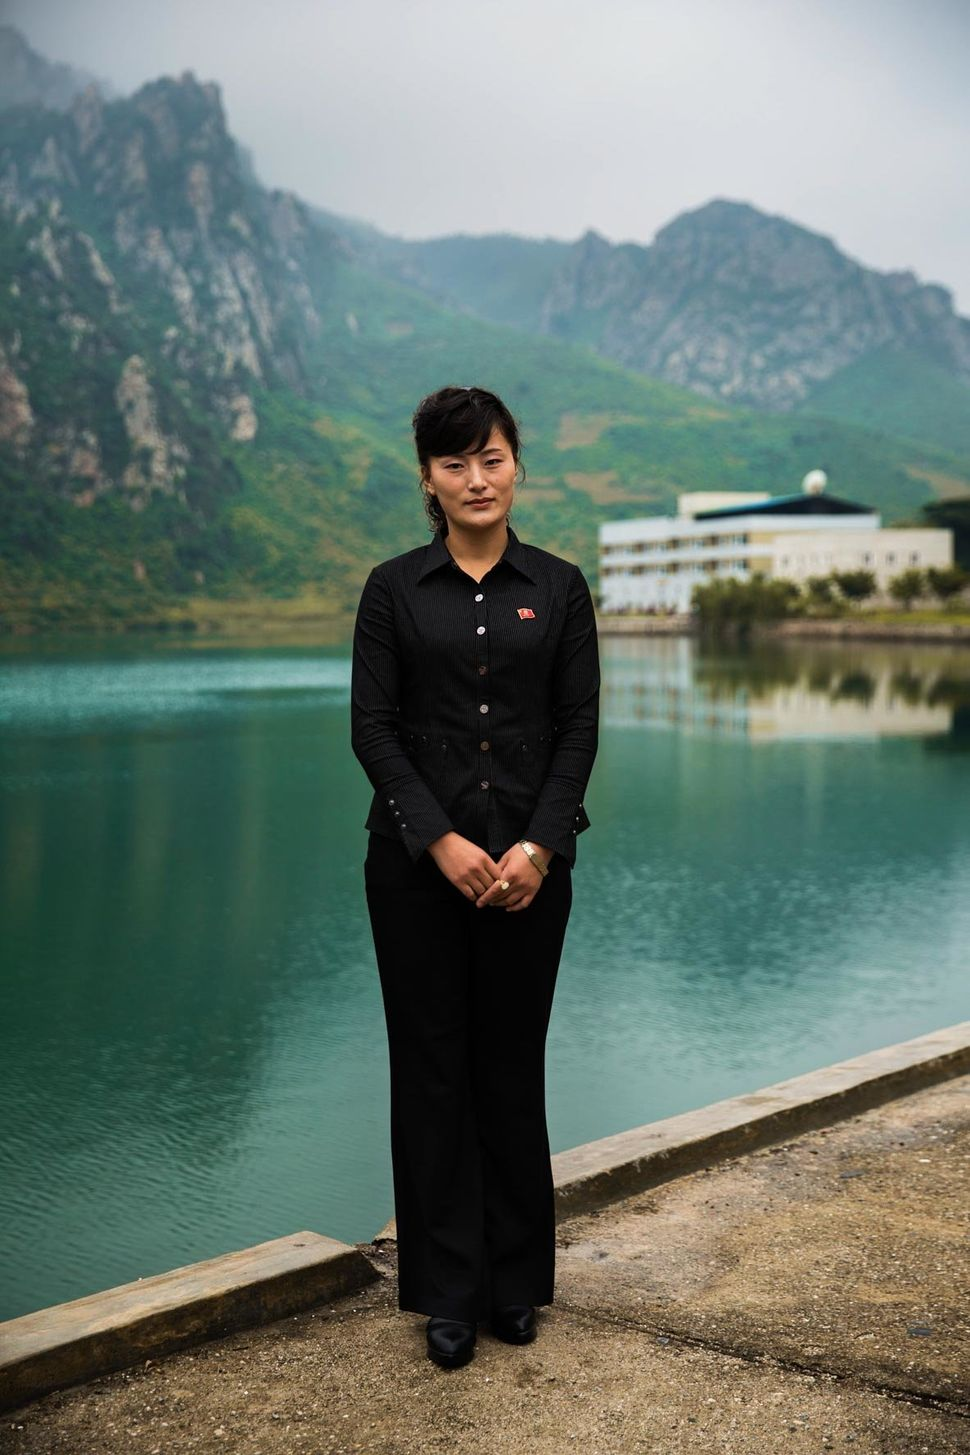 The landscape of North Korea is dominated by mountains.